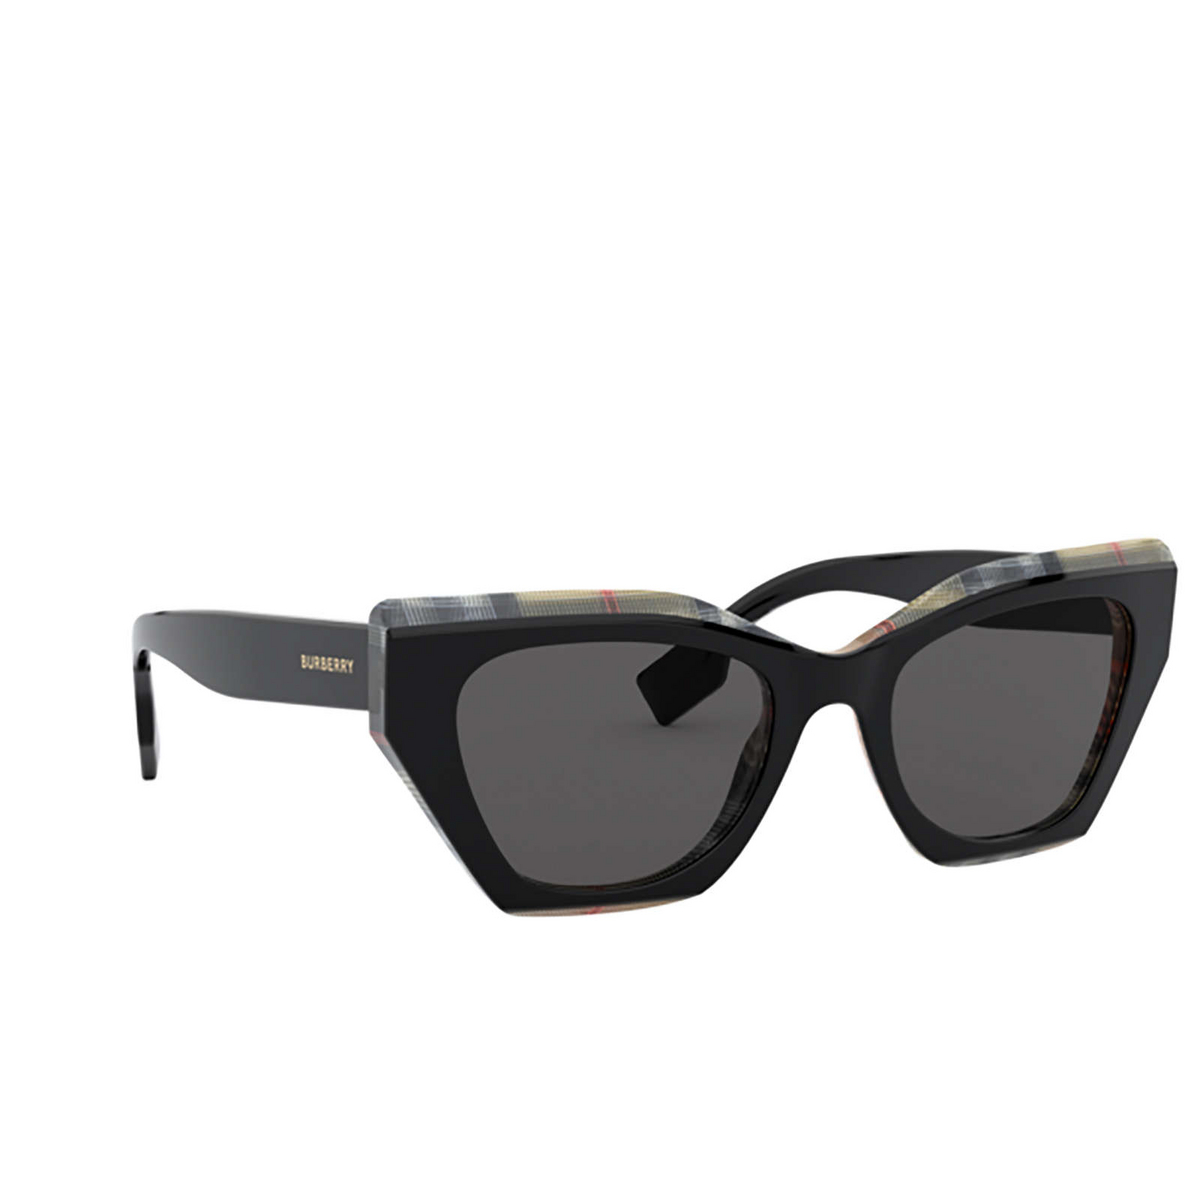 Burberry® Butterfly Sunglasses: Cressy BE4299 color Top Black On Vintage Check 382887 - three-quarters view.